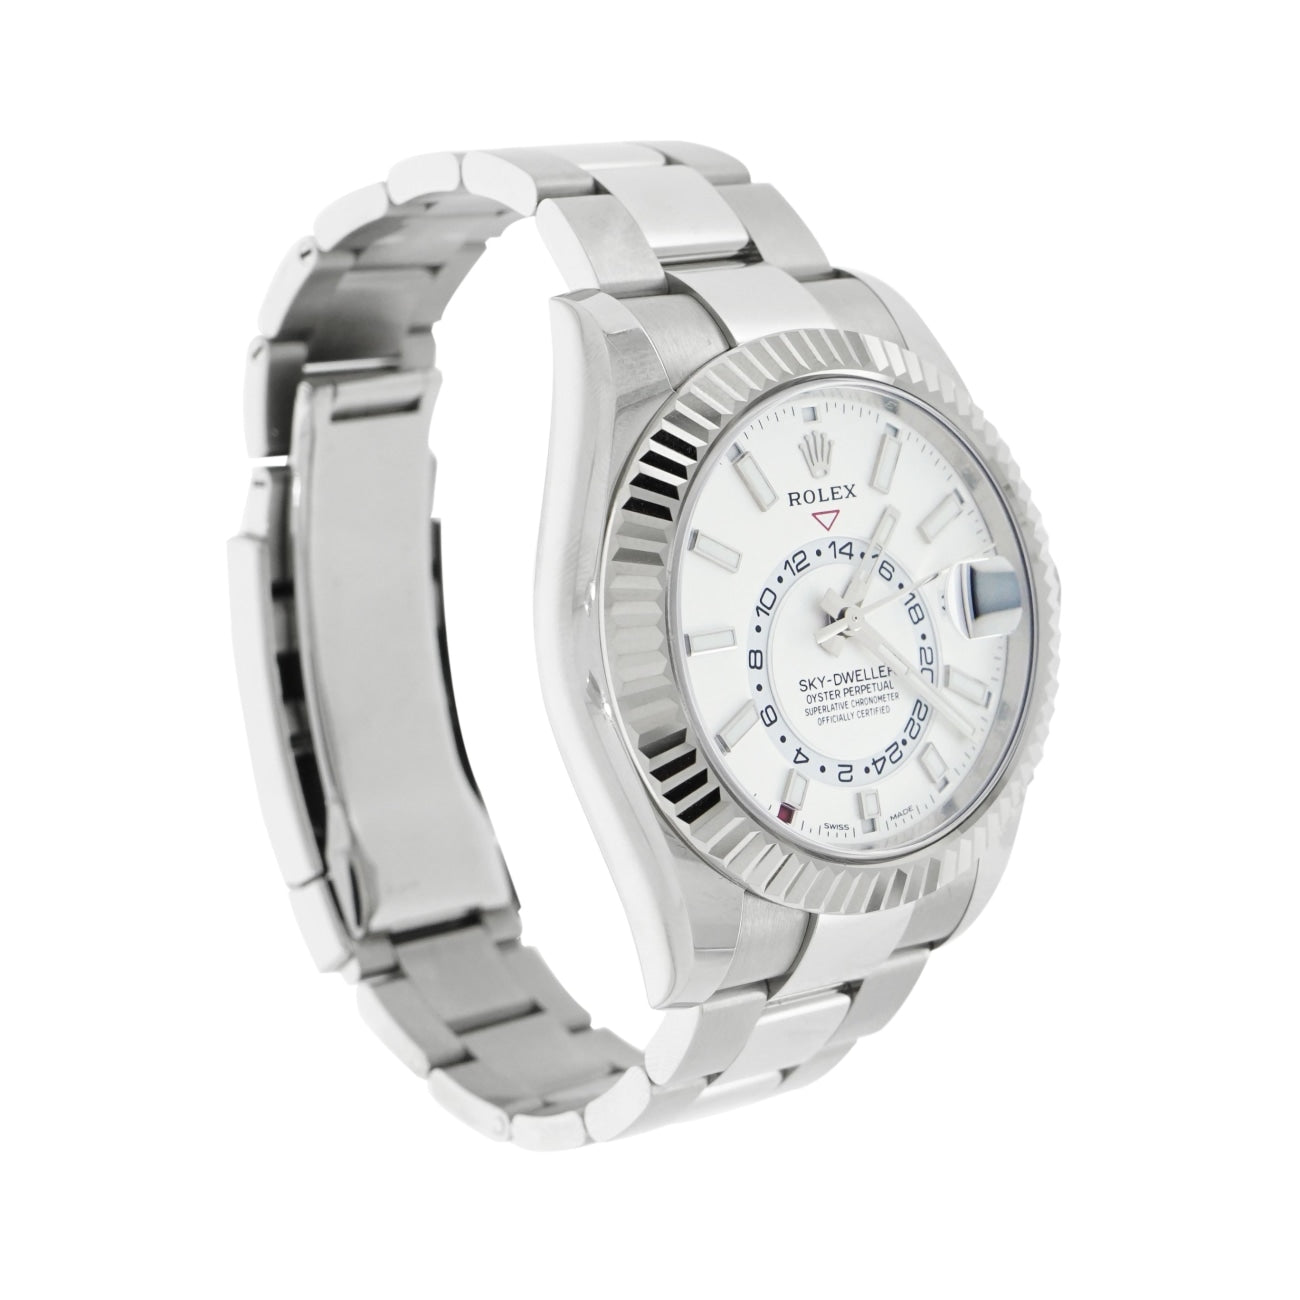 Pre-Owned Rolex Watches - Sky-Dweller Stainless Steel | Manfredi Jewels